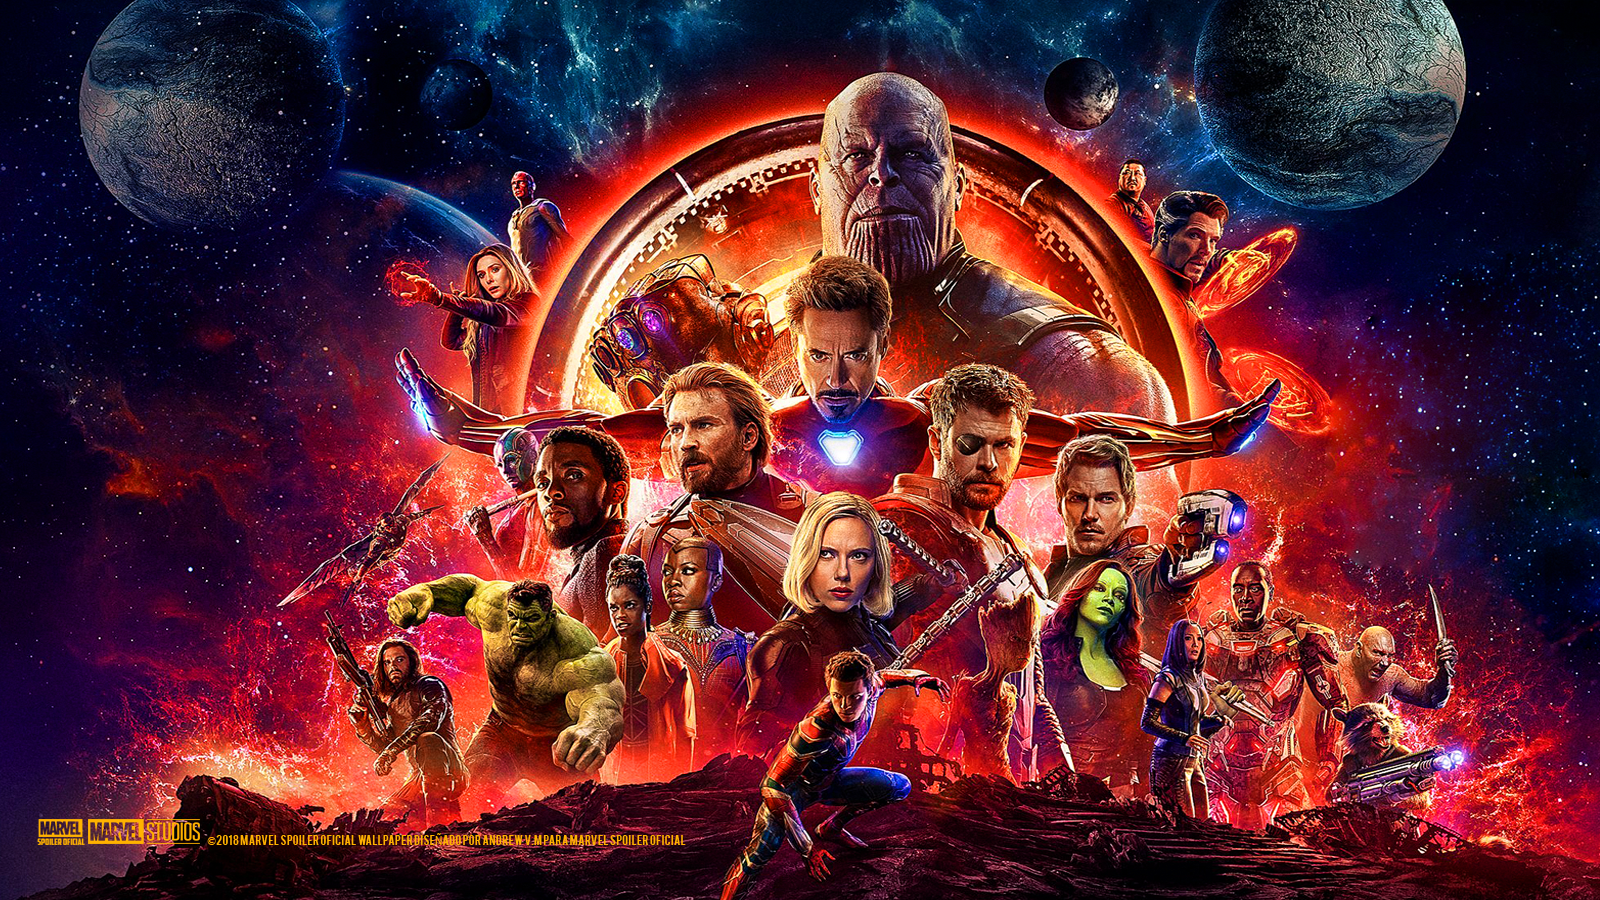 Marvel Spoiler Oficial Avengers Infinity War Wallpapers HD Wallpapers Download Free Images Wallpaper [1000image.com]